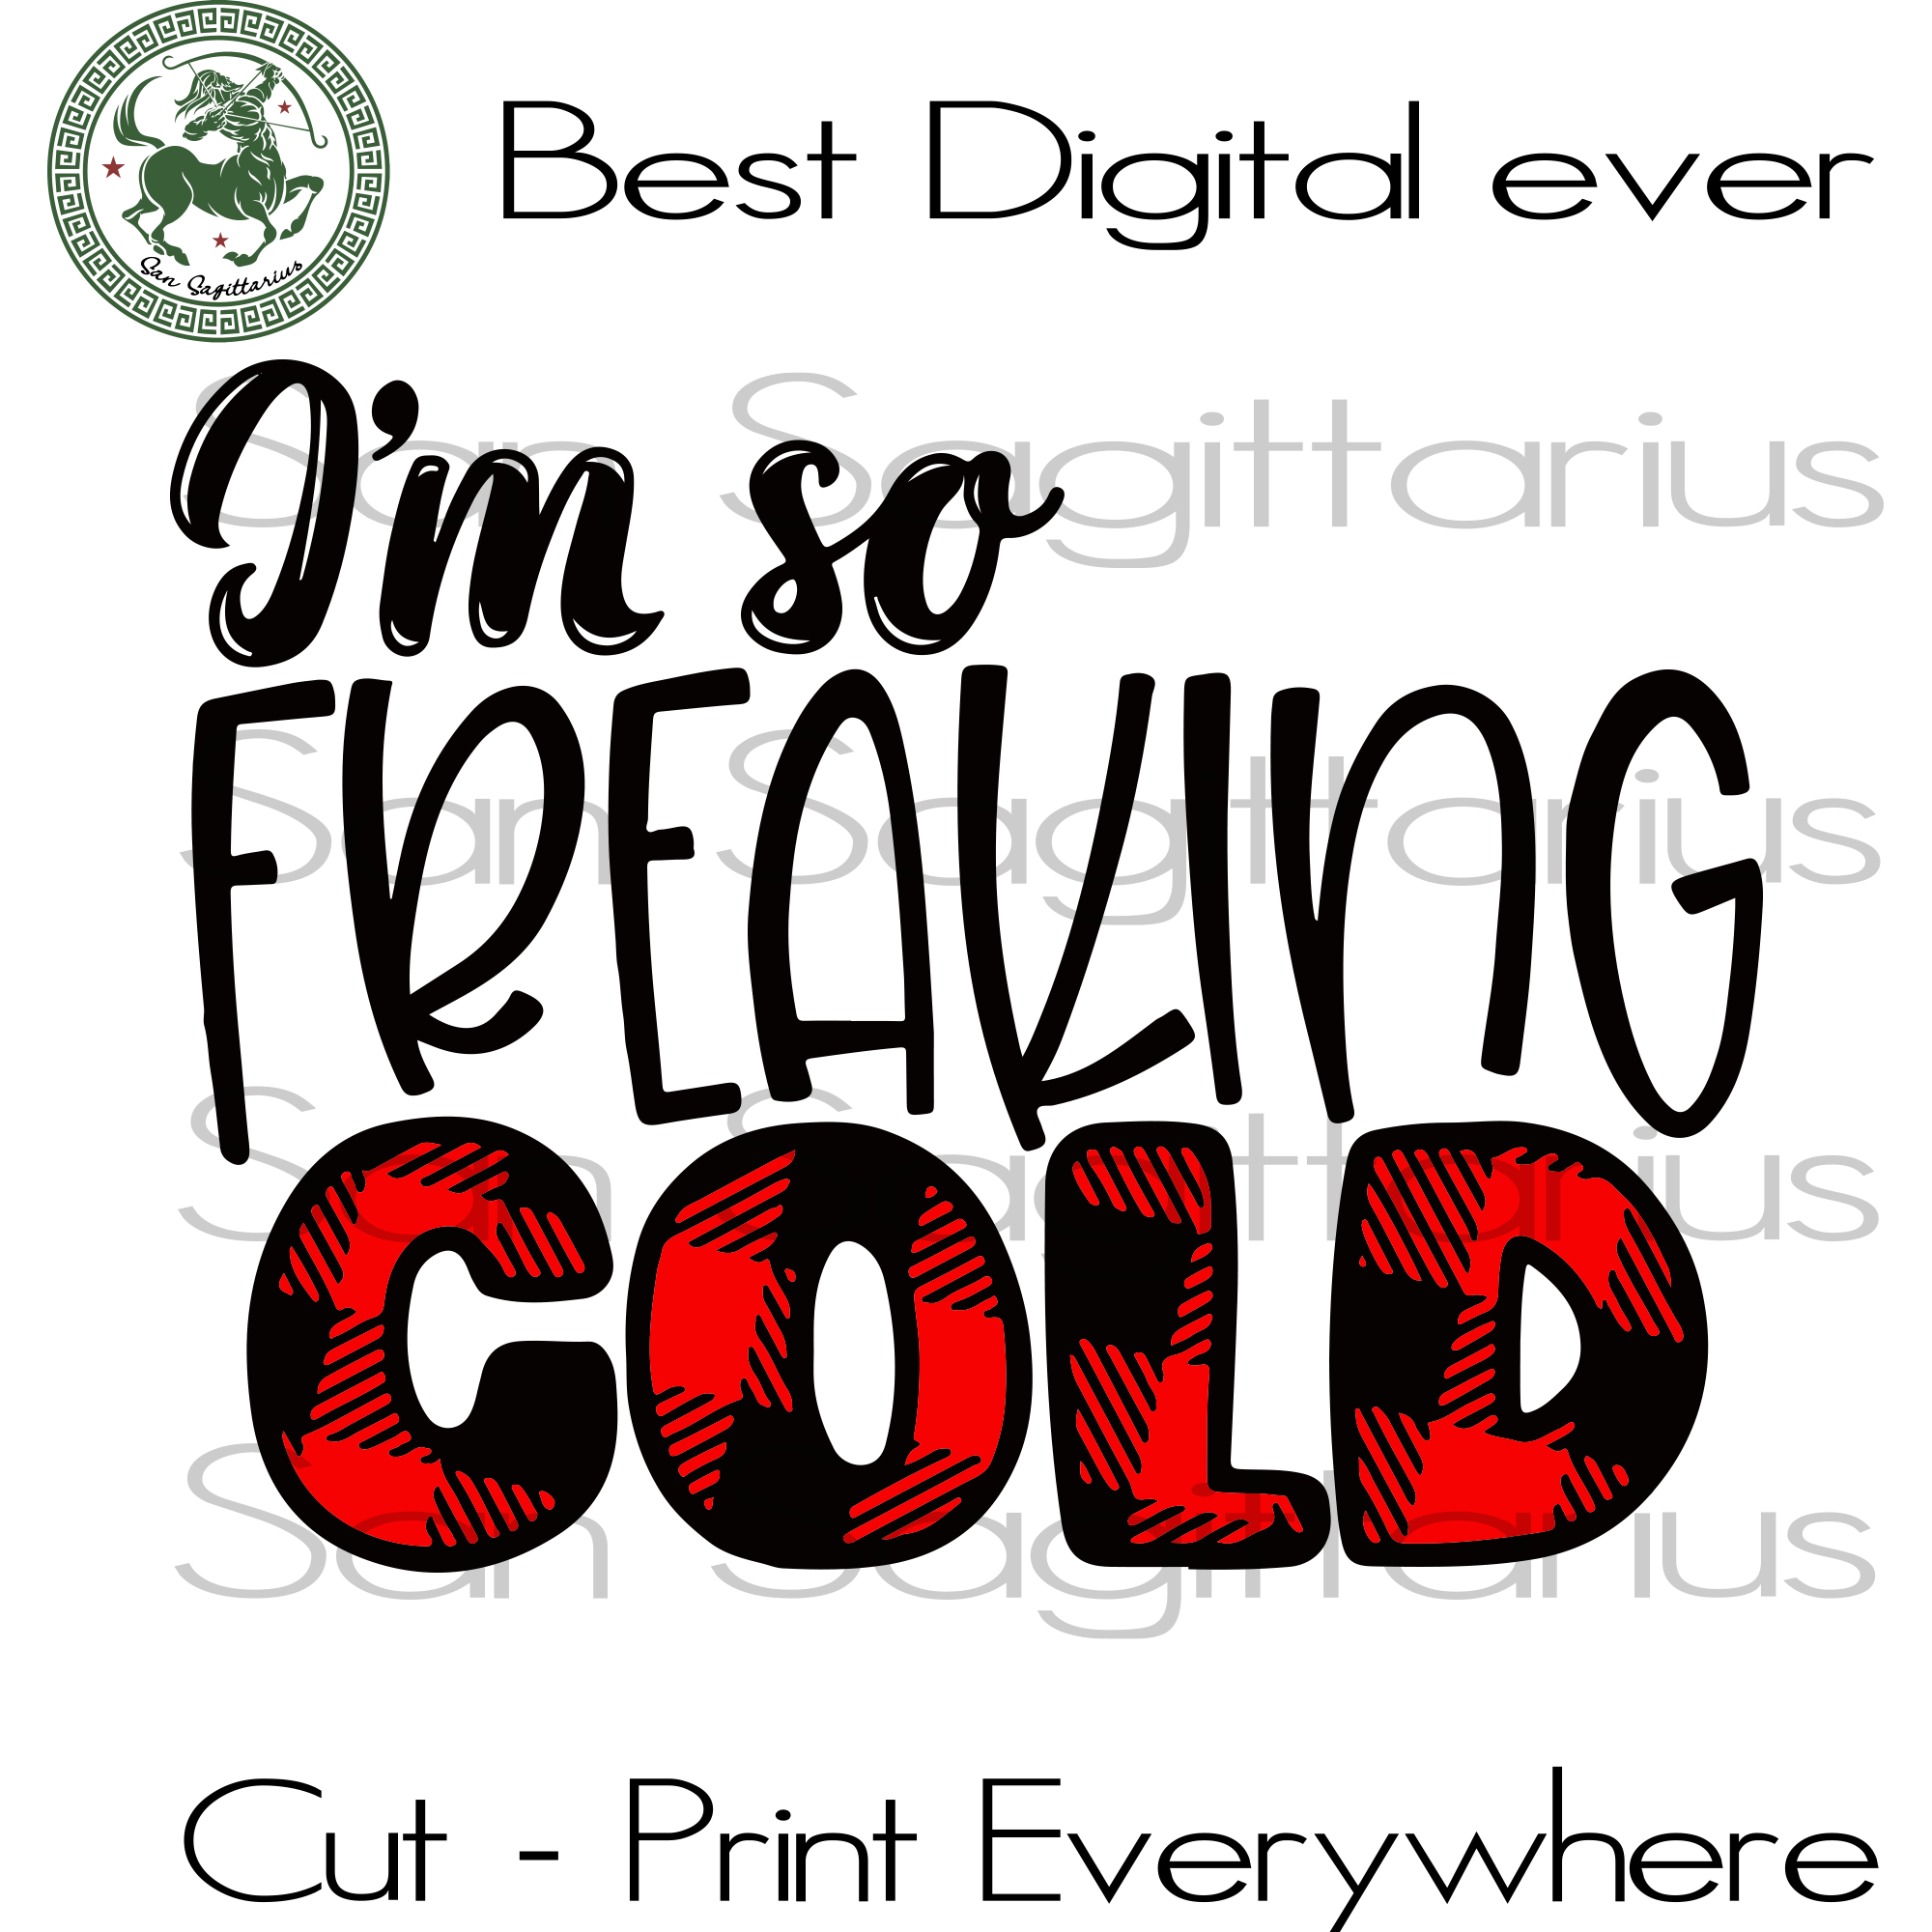 I'm so freaking cold svg, patterned svg, buffalo plaid svg, christmas svg, winter svg, freaking cold svg, christmas, christmas gifts, merry christmas, holiday christmas, christmas decor, frea